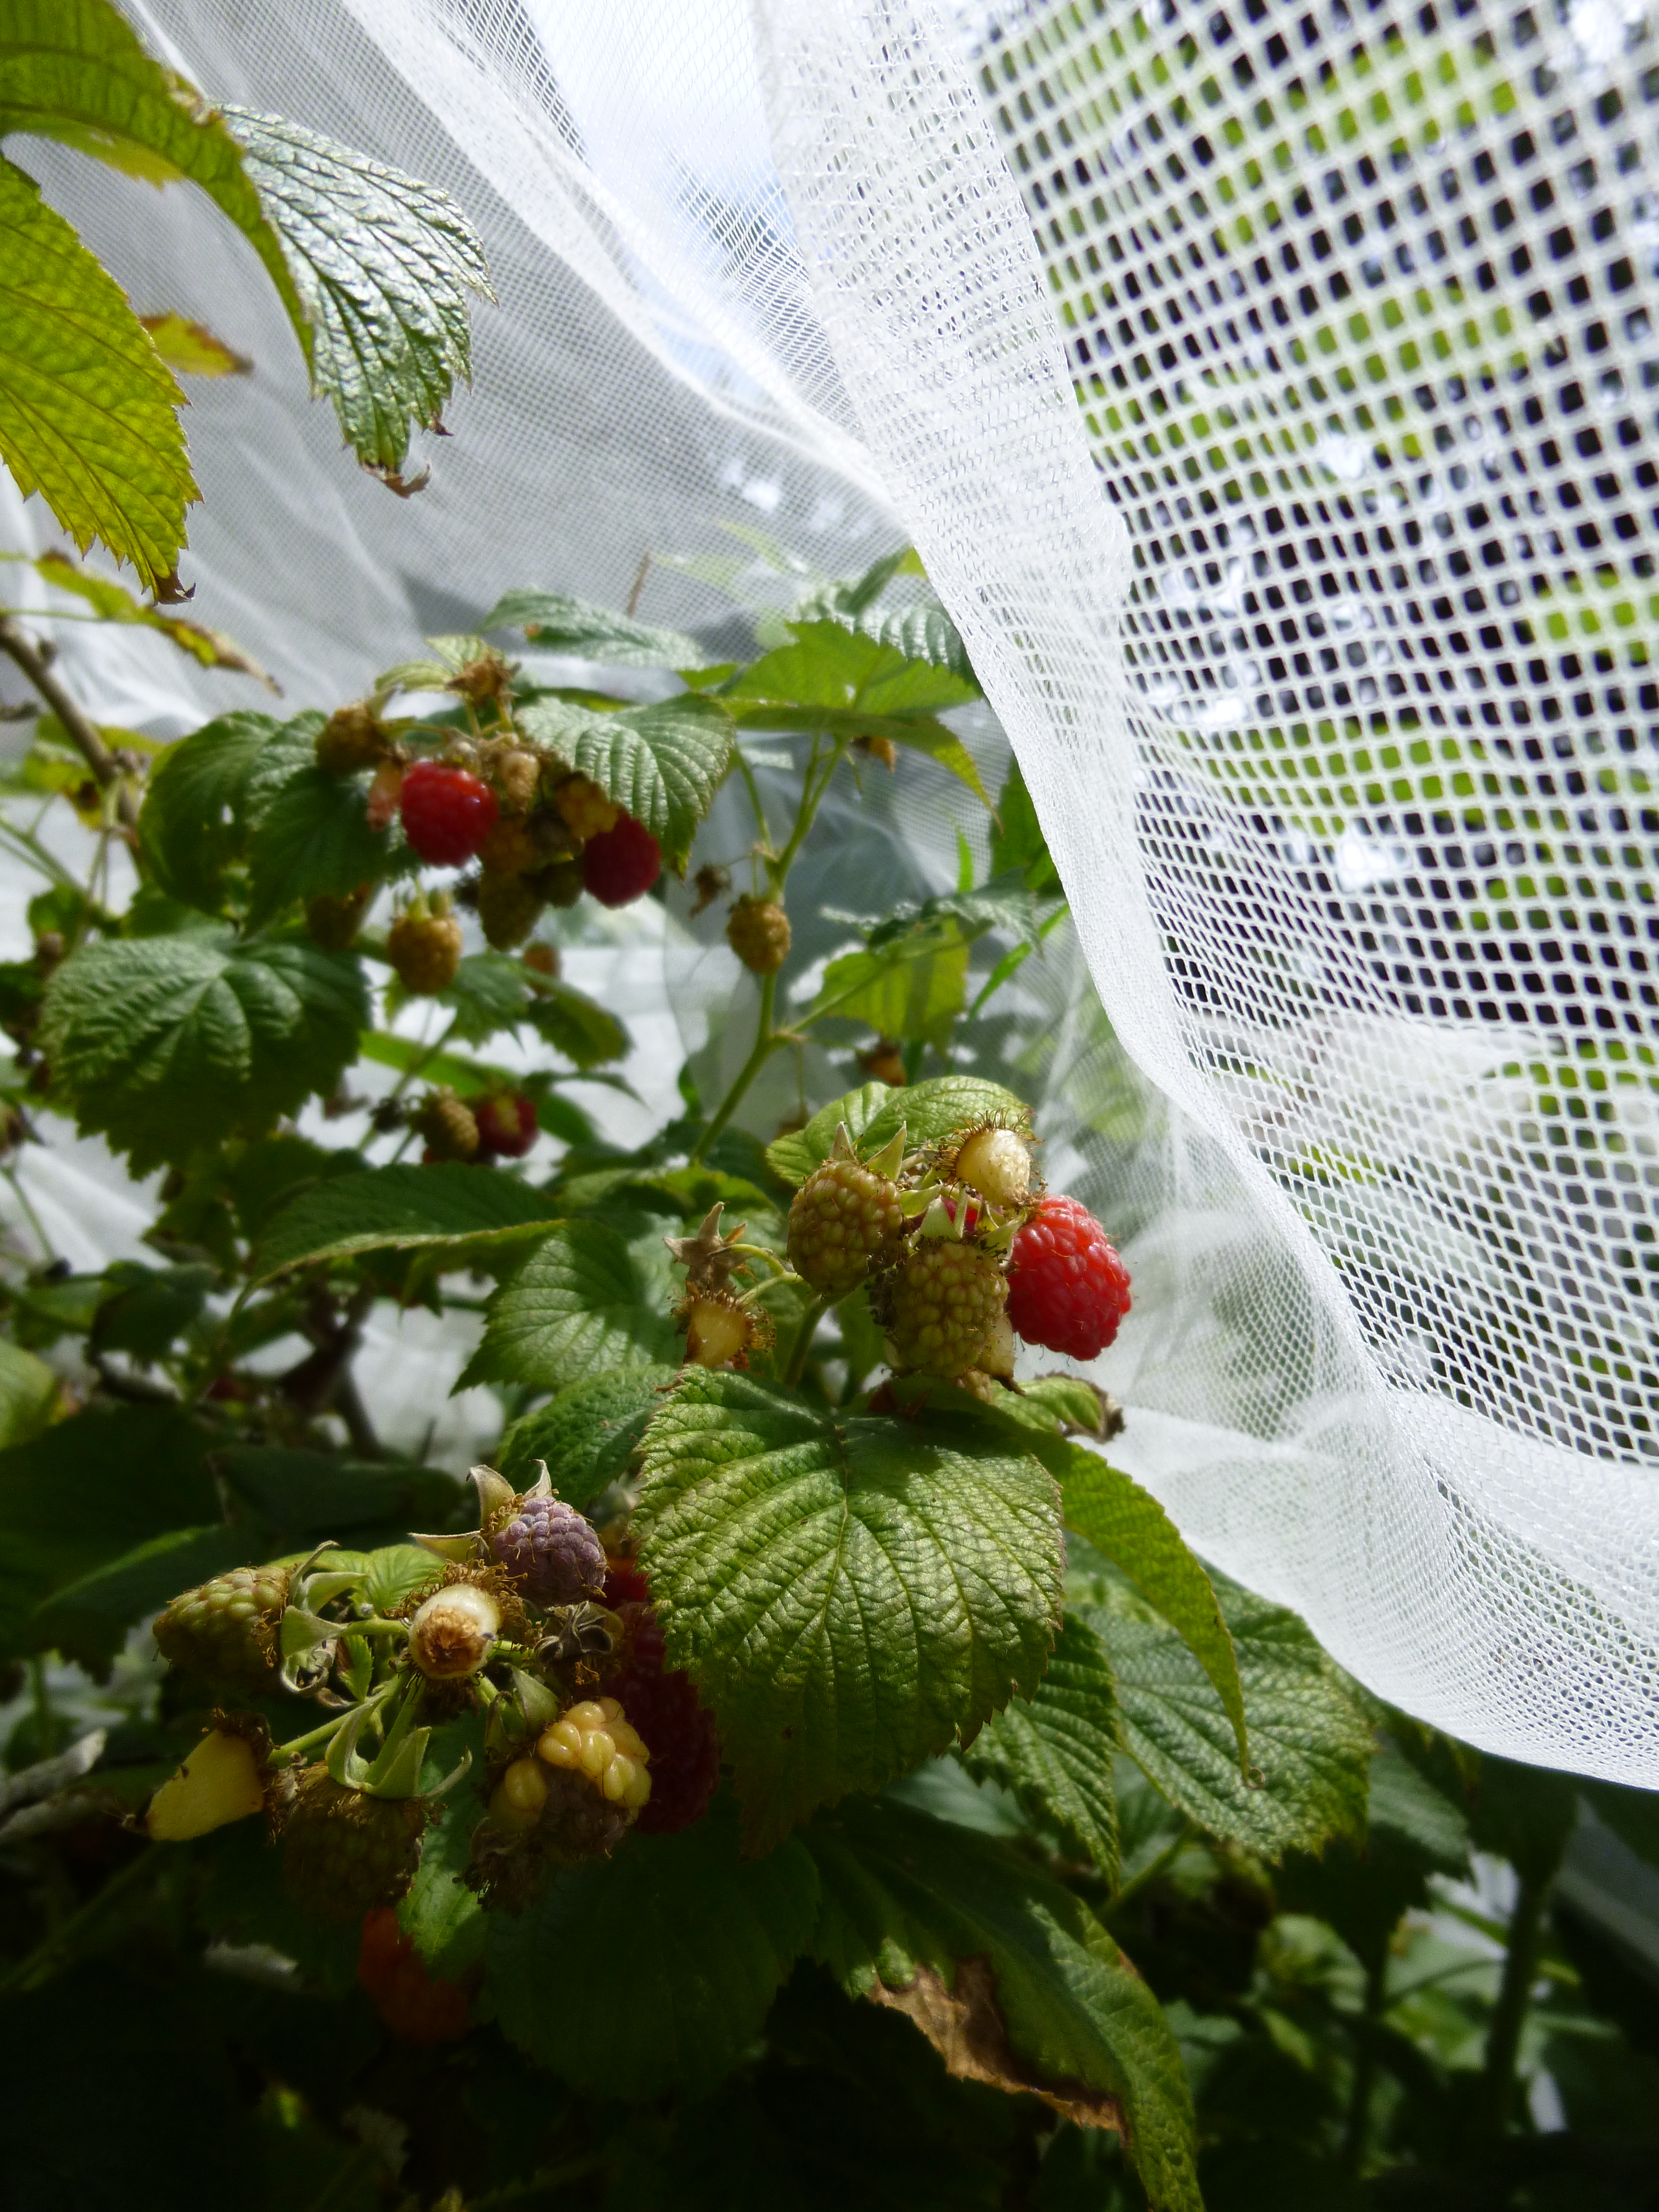 uv which kind clear orchard anti with bird a for garden birds protection prey net prevents of netting is